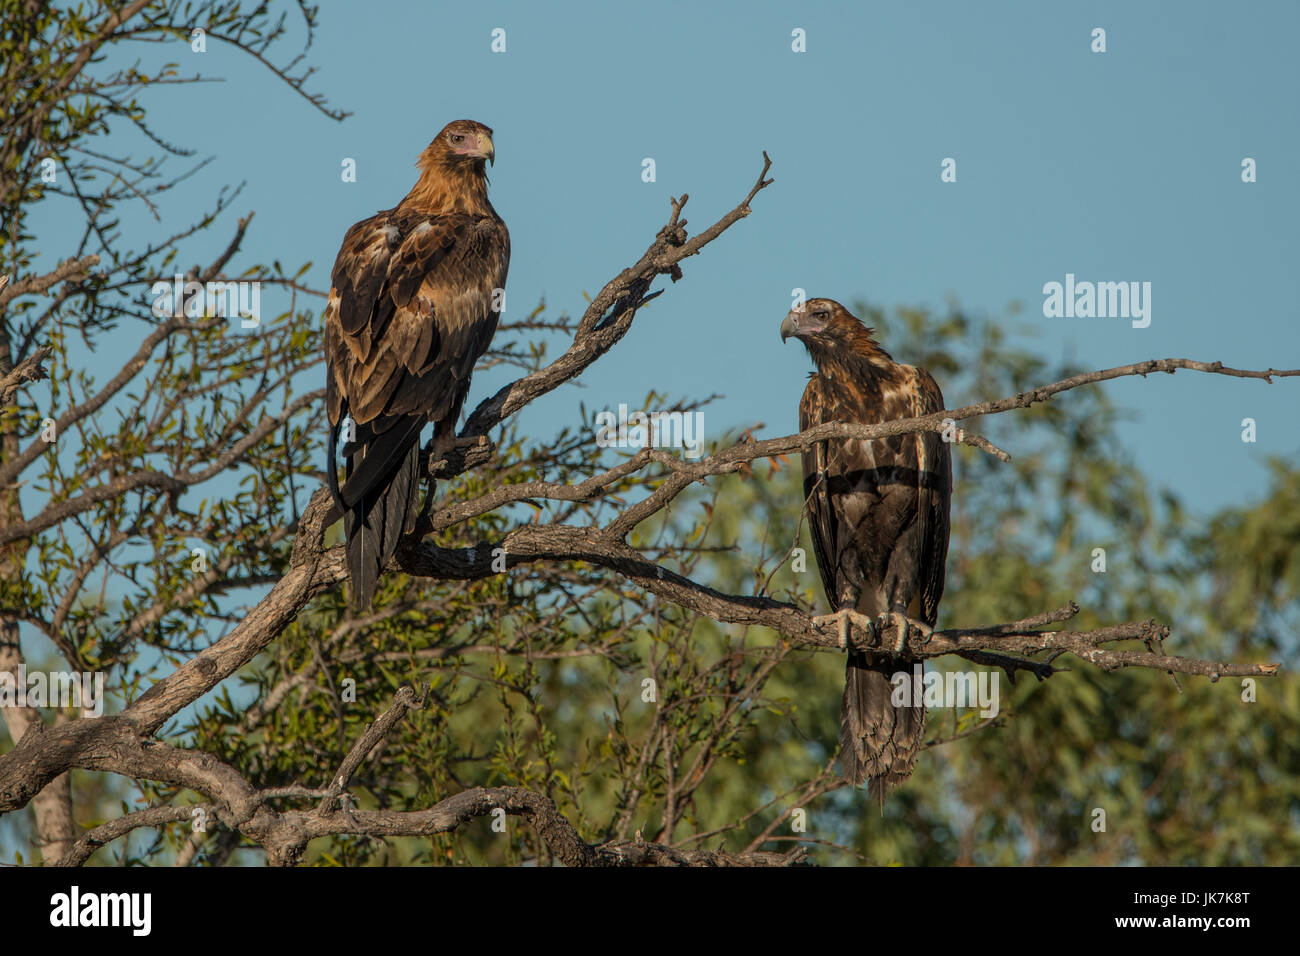 Wedge-tailed Eagles, Aquila audax near Burketown - Stock Image